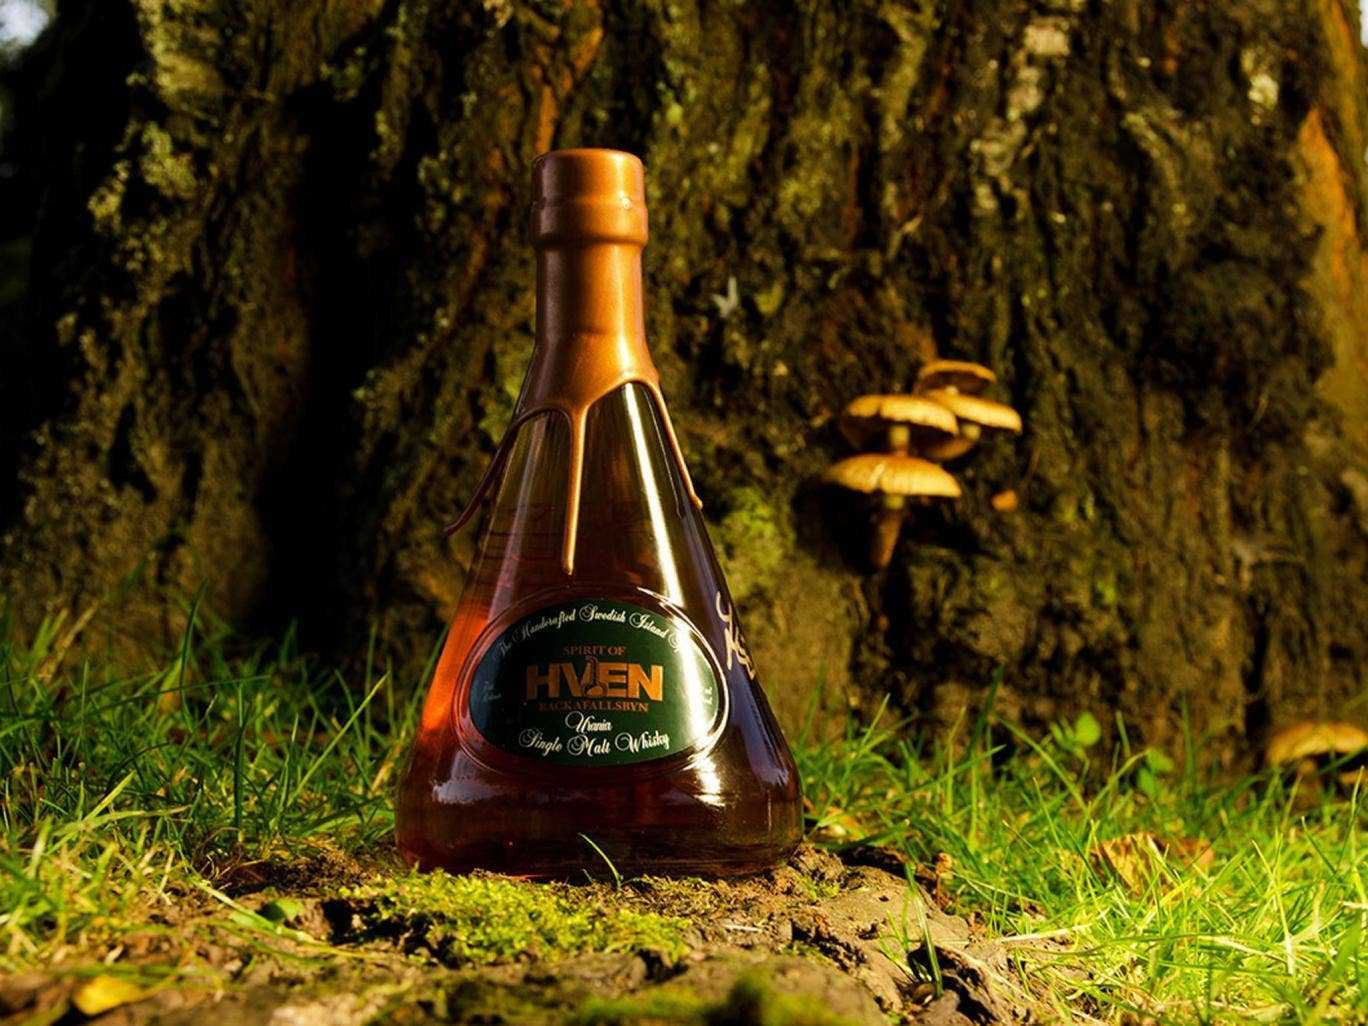 Advise good wood spirits for women, that it is direct an unusual smell. I have a molecule